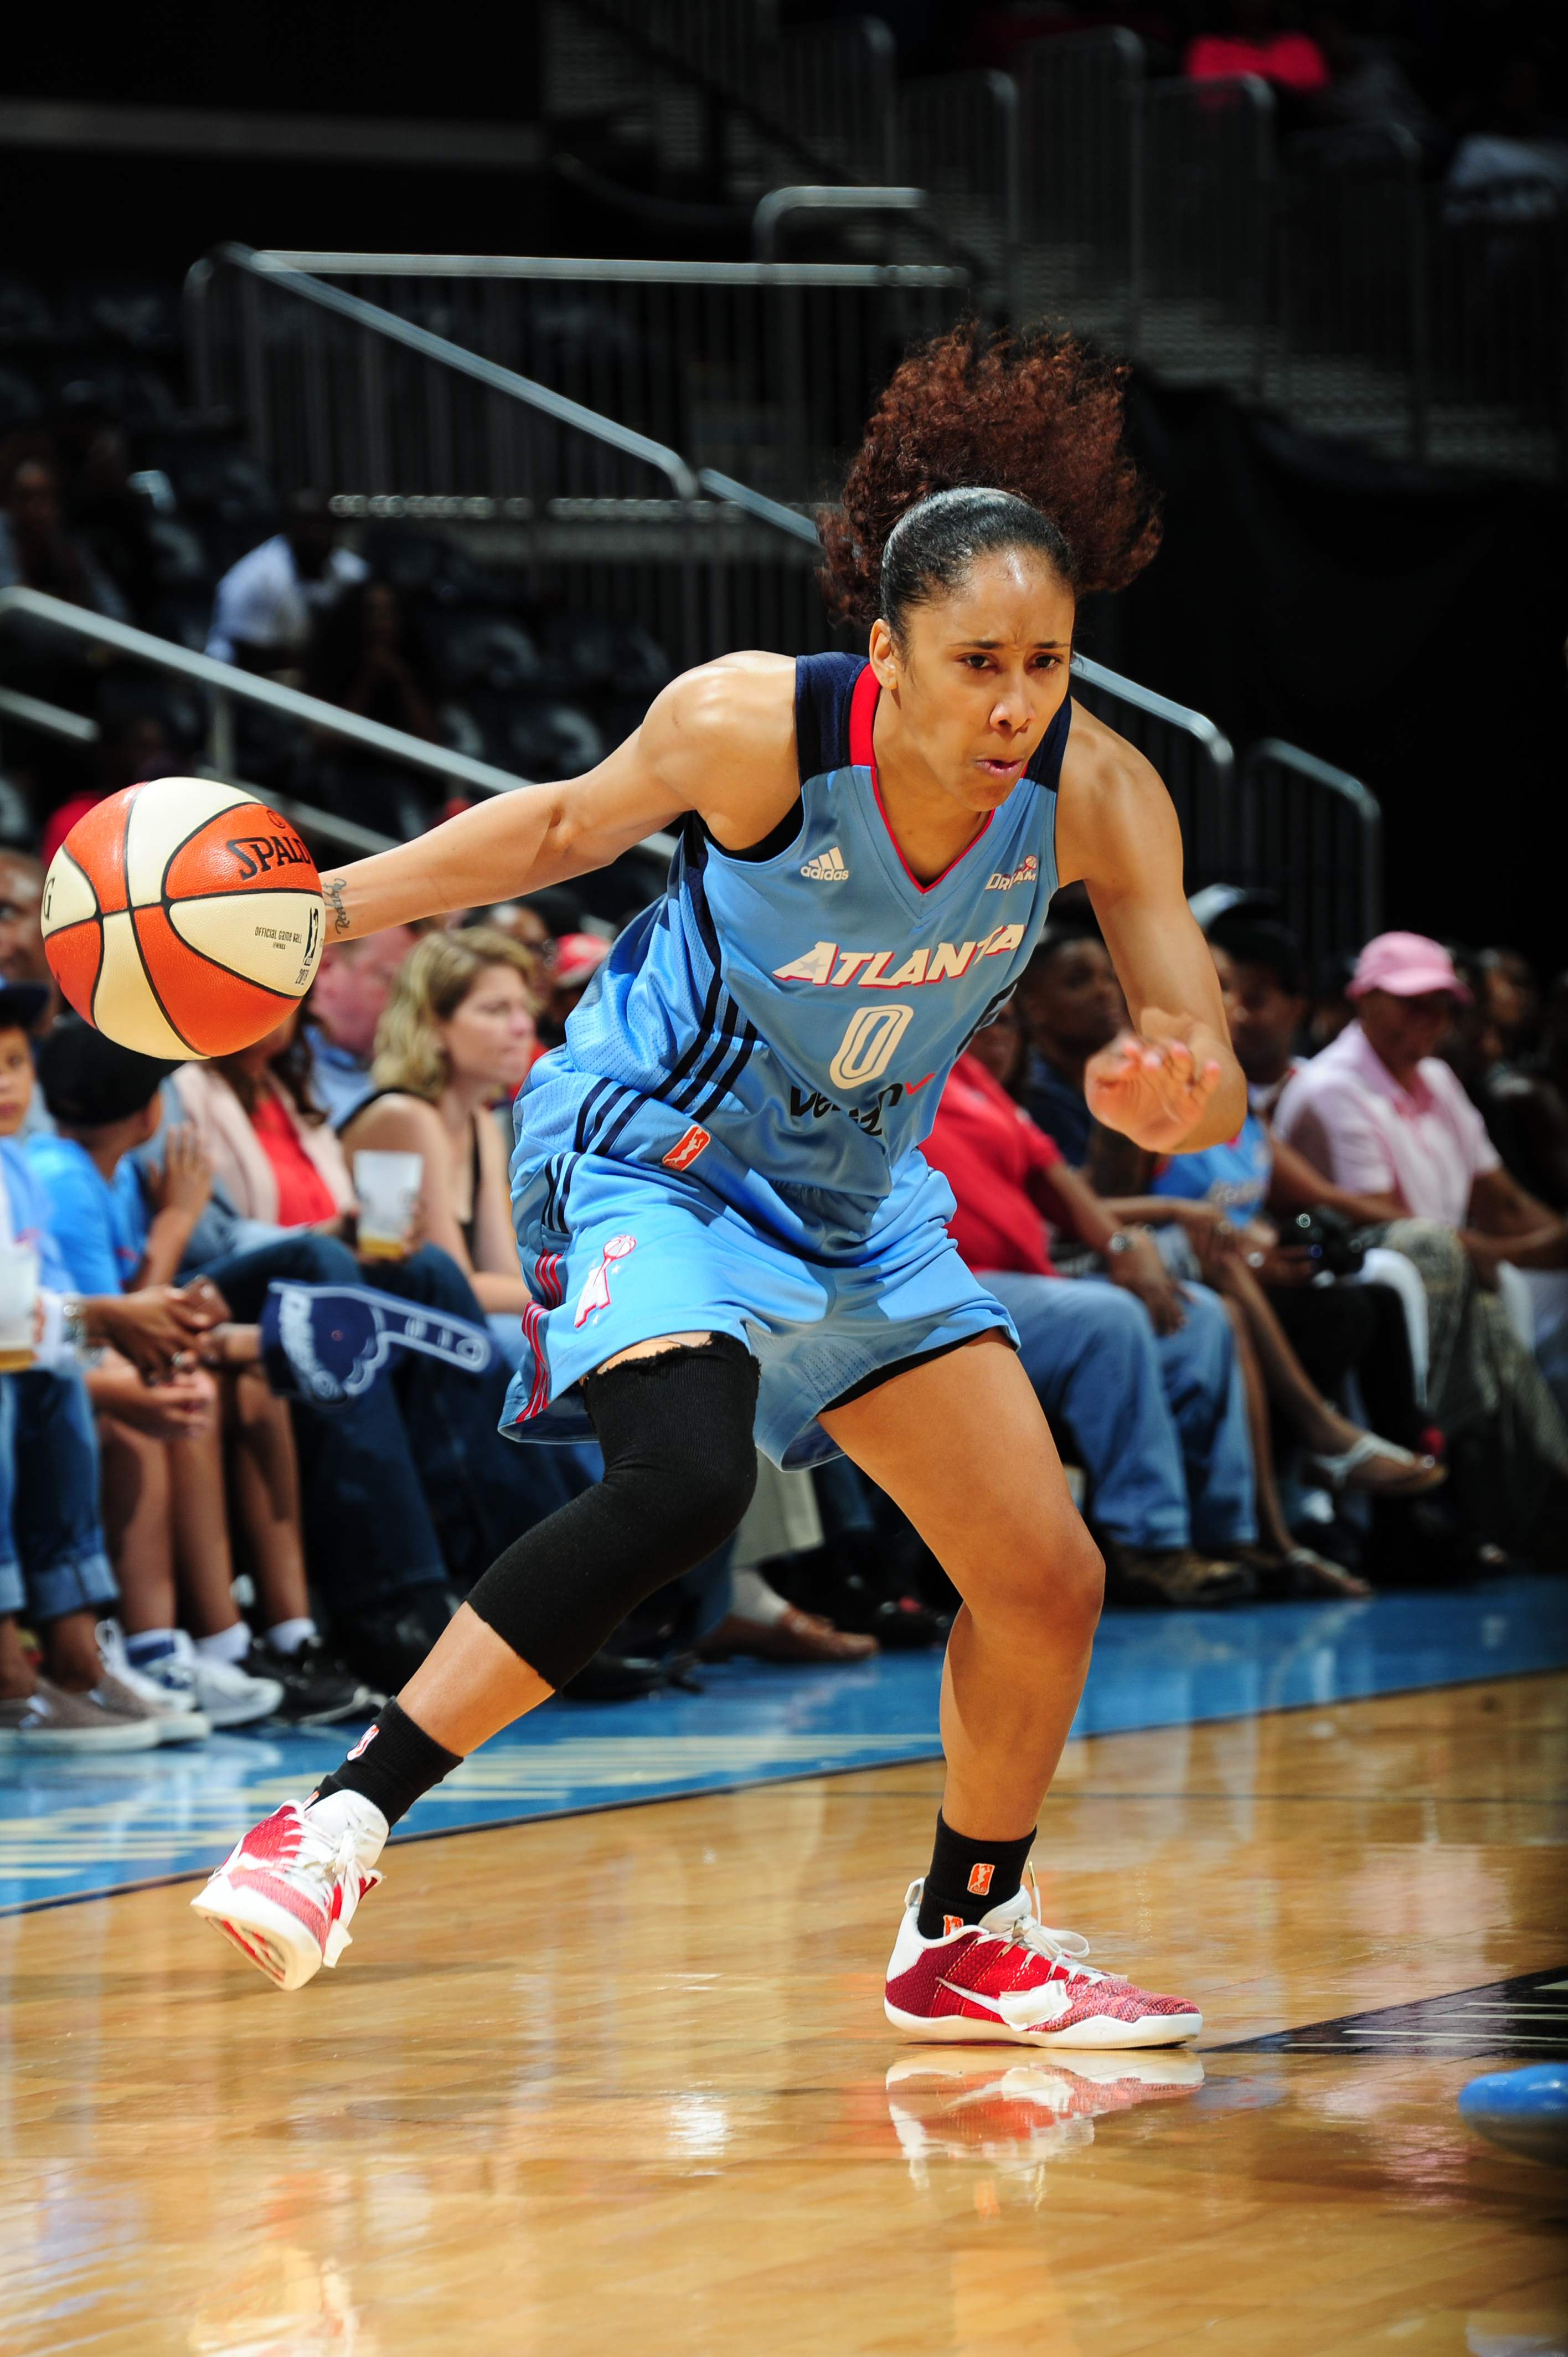 ATLANTA, GA - JUNE 17: Meighan Simmons #0 of the Atlanta Dream dribbles the ball against the Chicago Sky on June 17, 2016 at Philips Arena in Atlanta, Georgia. NOTE TO USER: User expressly acknowledges and agrees that, by downloading and/or using this Photograph, user is consenting to the terms and conditions of the Getty Images License Agreement. Mandatory Copyright Notice: Copyright 2016 NBAE (Photo by Scott Cunningham/NBAE via Getty Images)